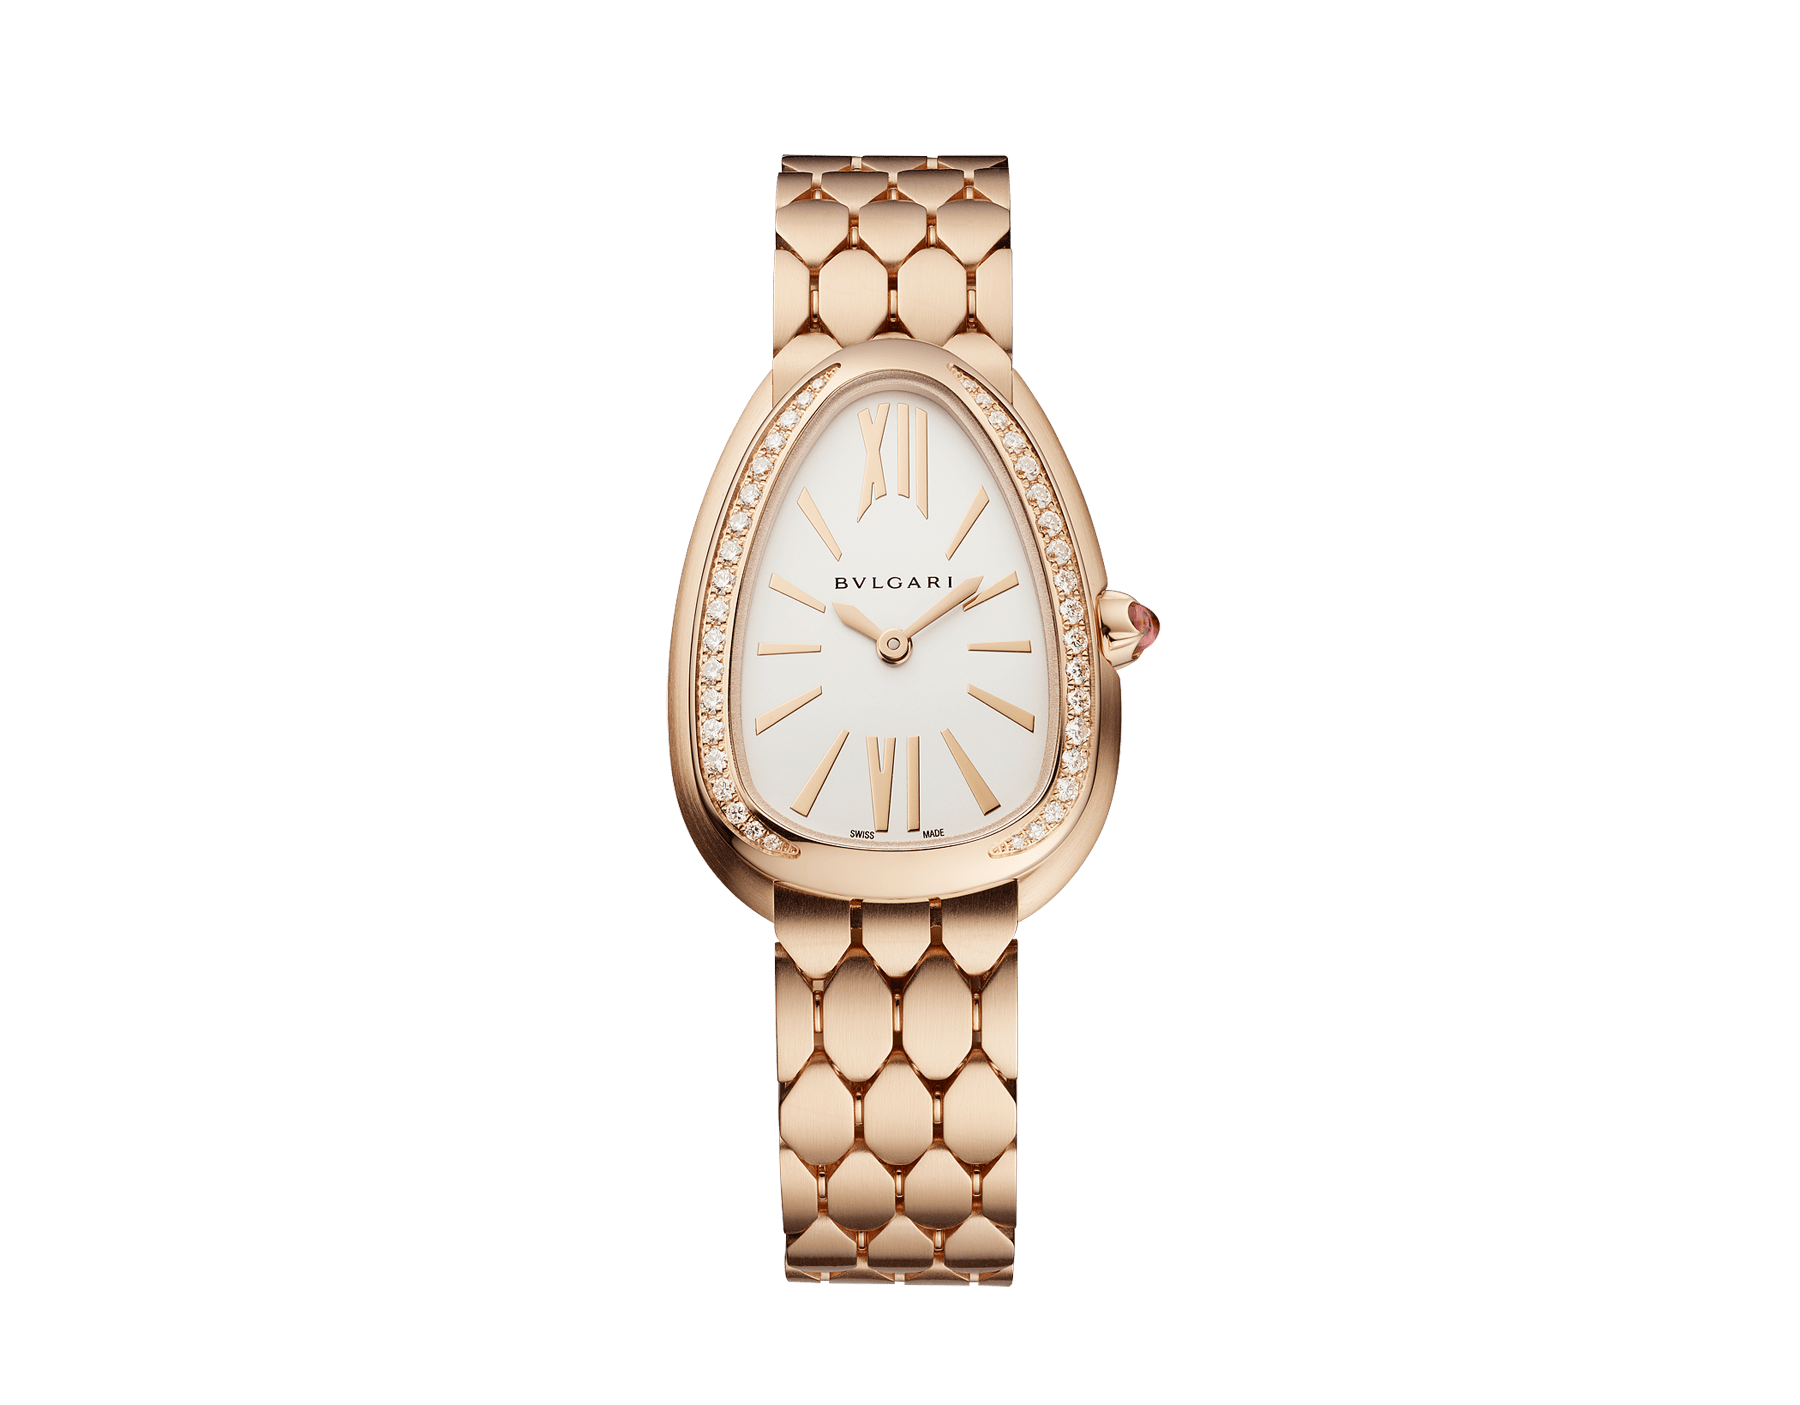 Serpenti Seduttori watch with 18 kt rose gold case, 18 kt rose gold bezel set with diamonds, white silver opaline dial and brushed 18 kt rose gold bracelet. 103169 image 1